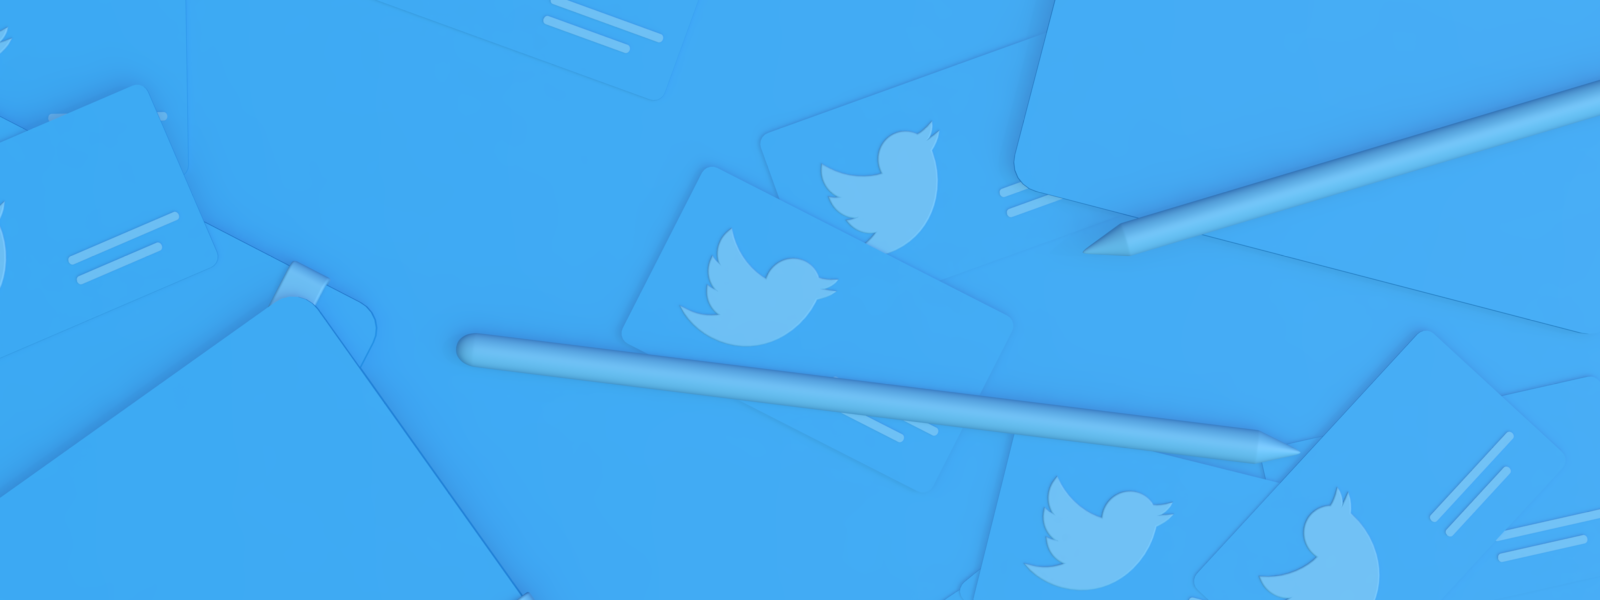 twitter symbol clipart royalty free